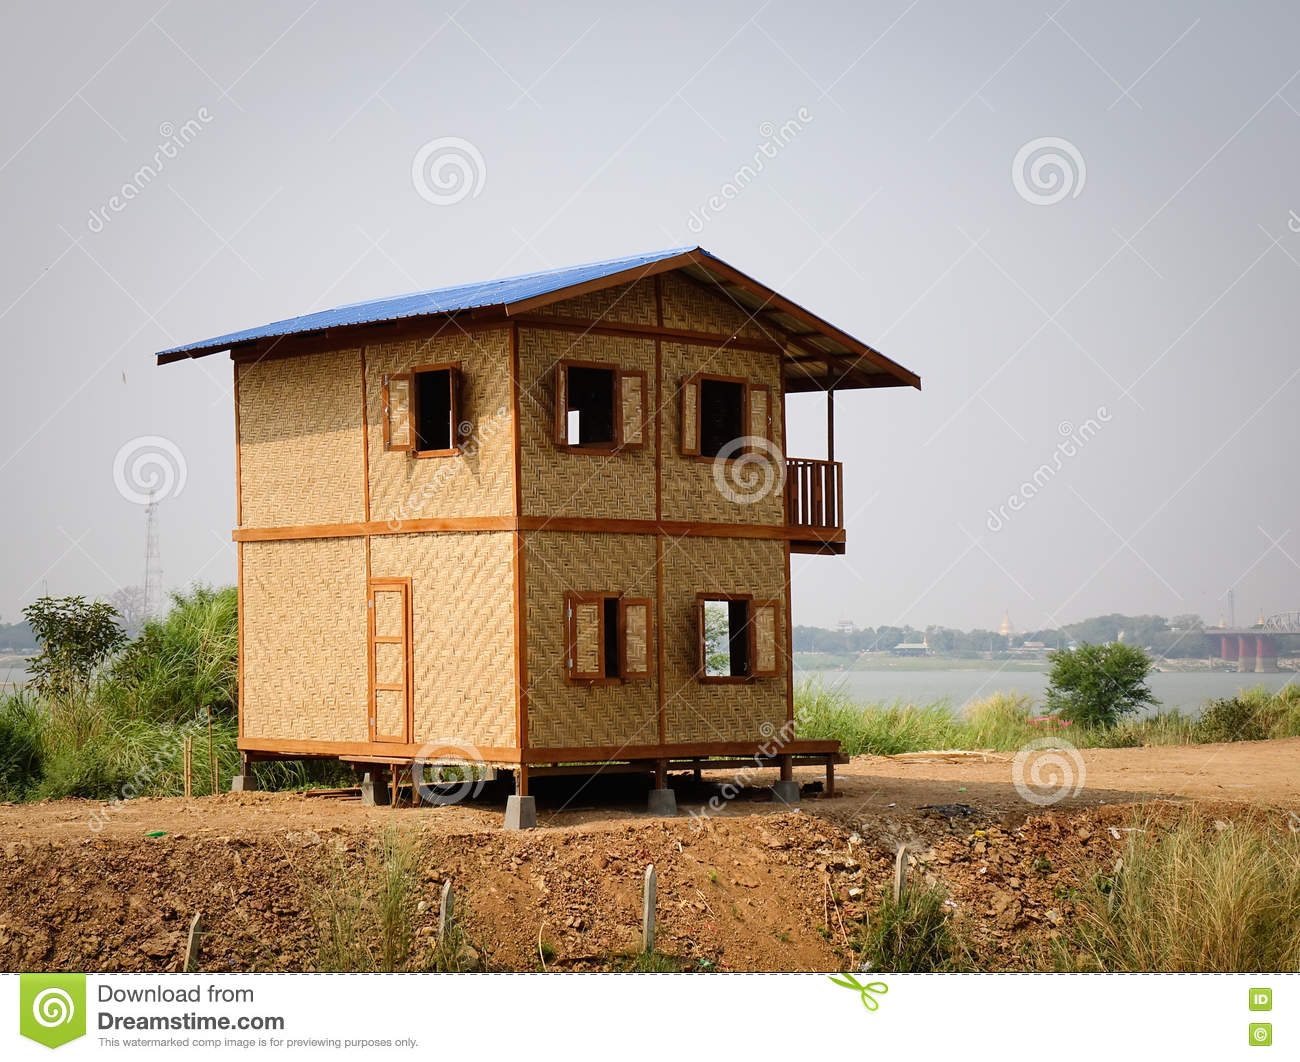 Small wooden house in mandalay myanmar stock photo for Small wooden house design